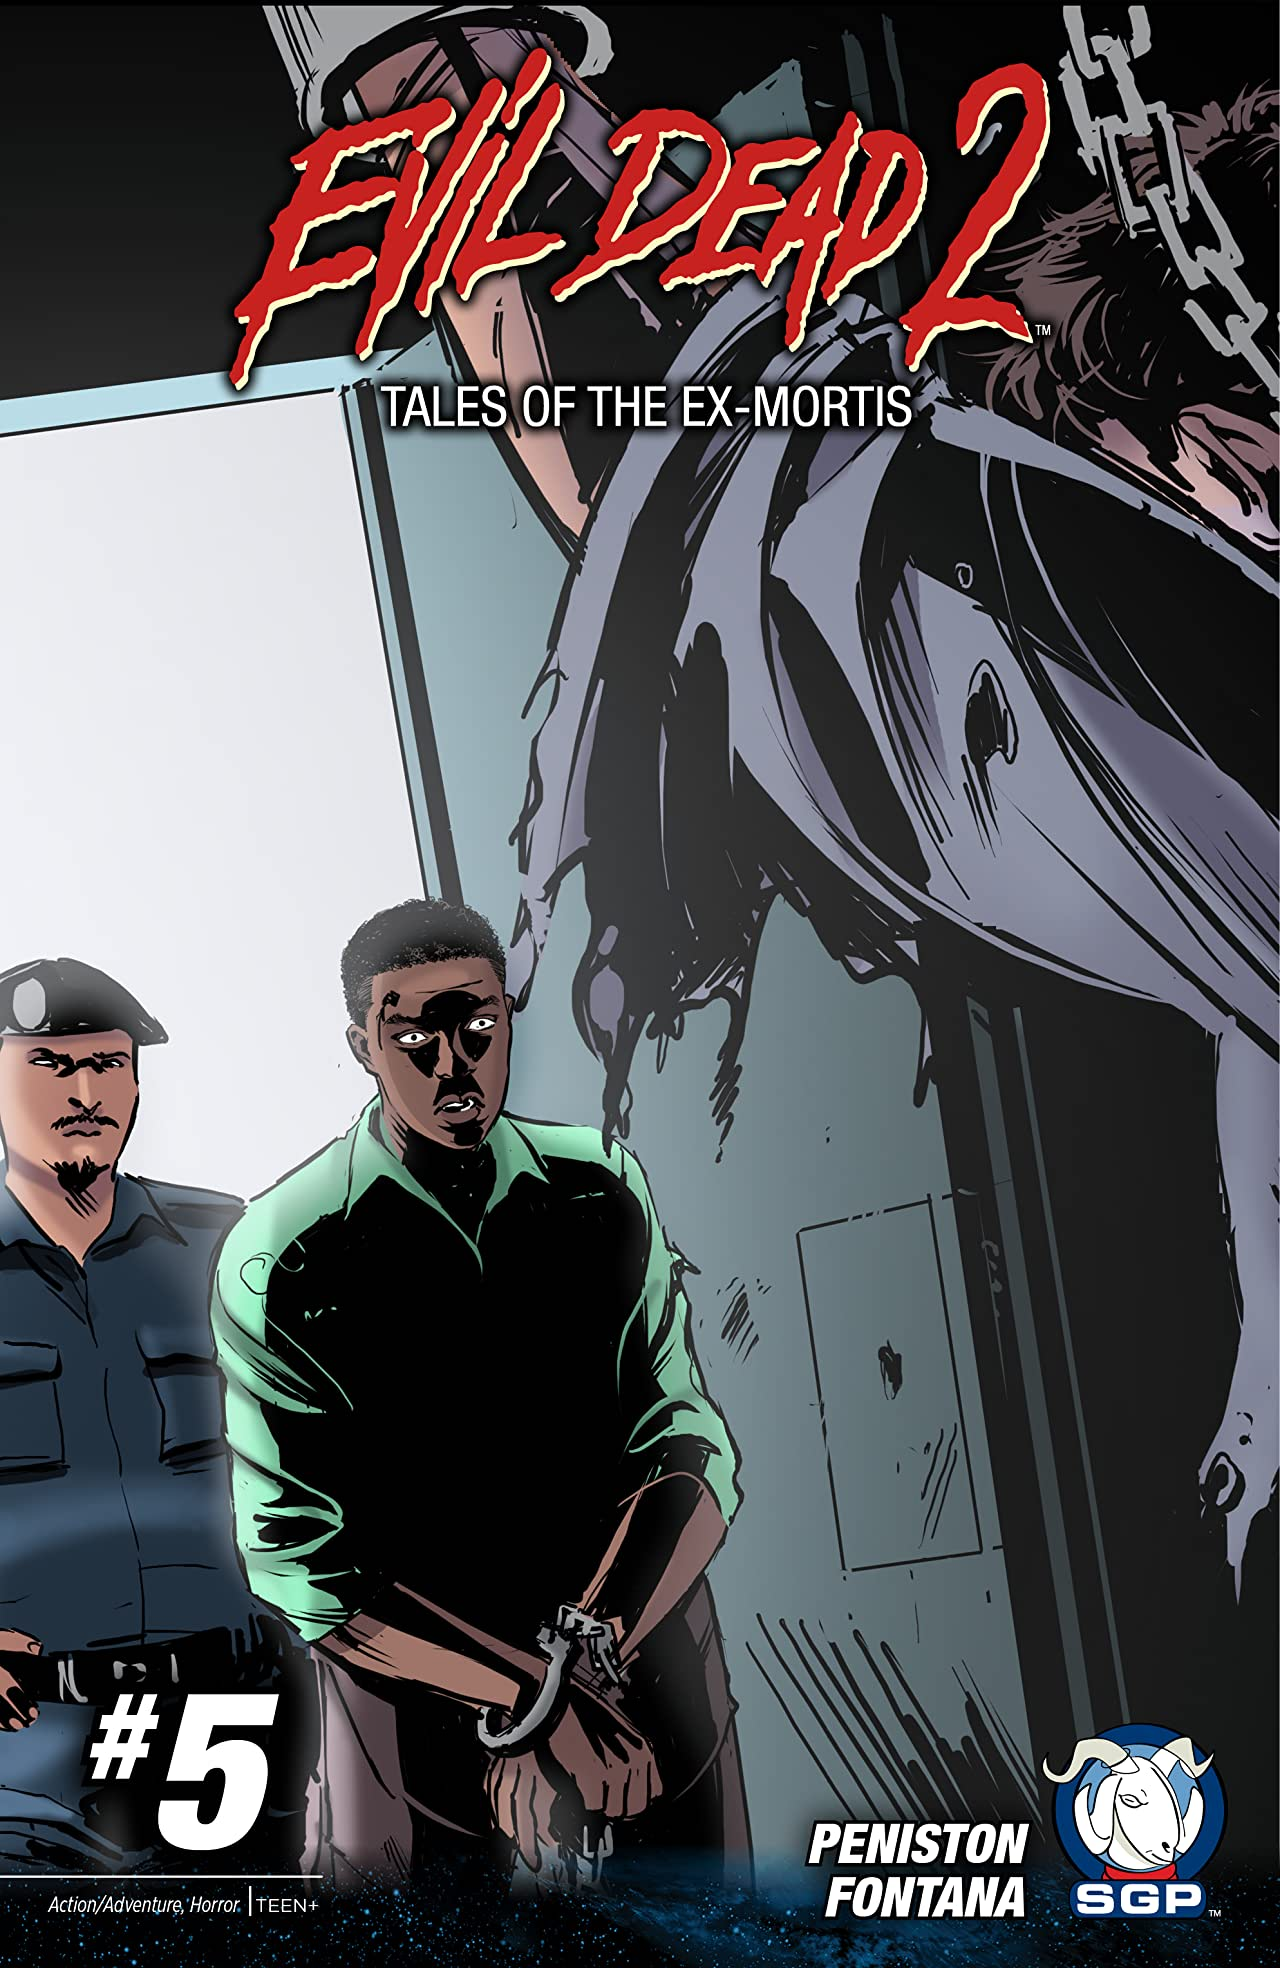 Evil Dead 2: Tales of the Ex-Mortis #5